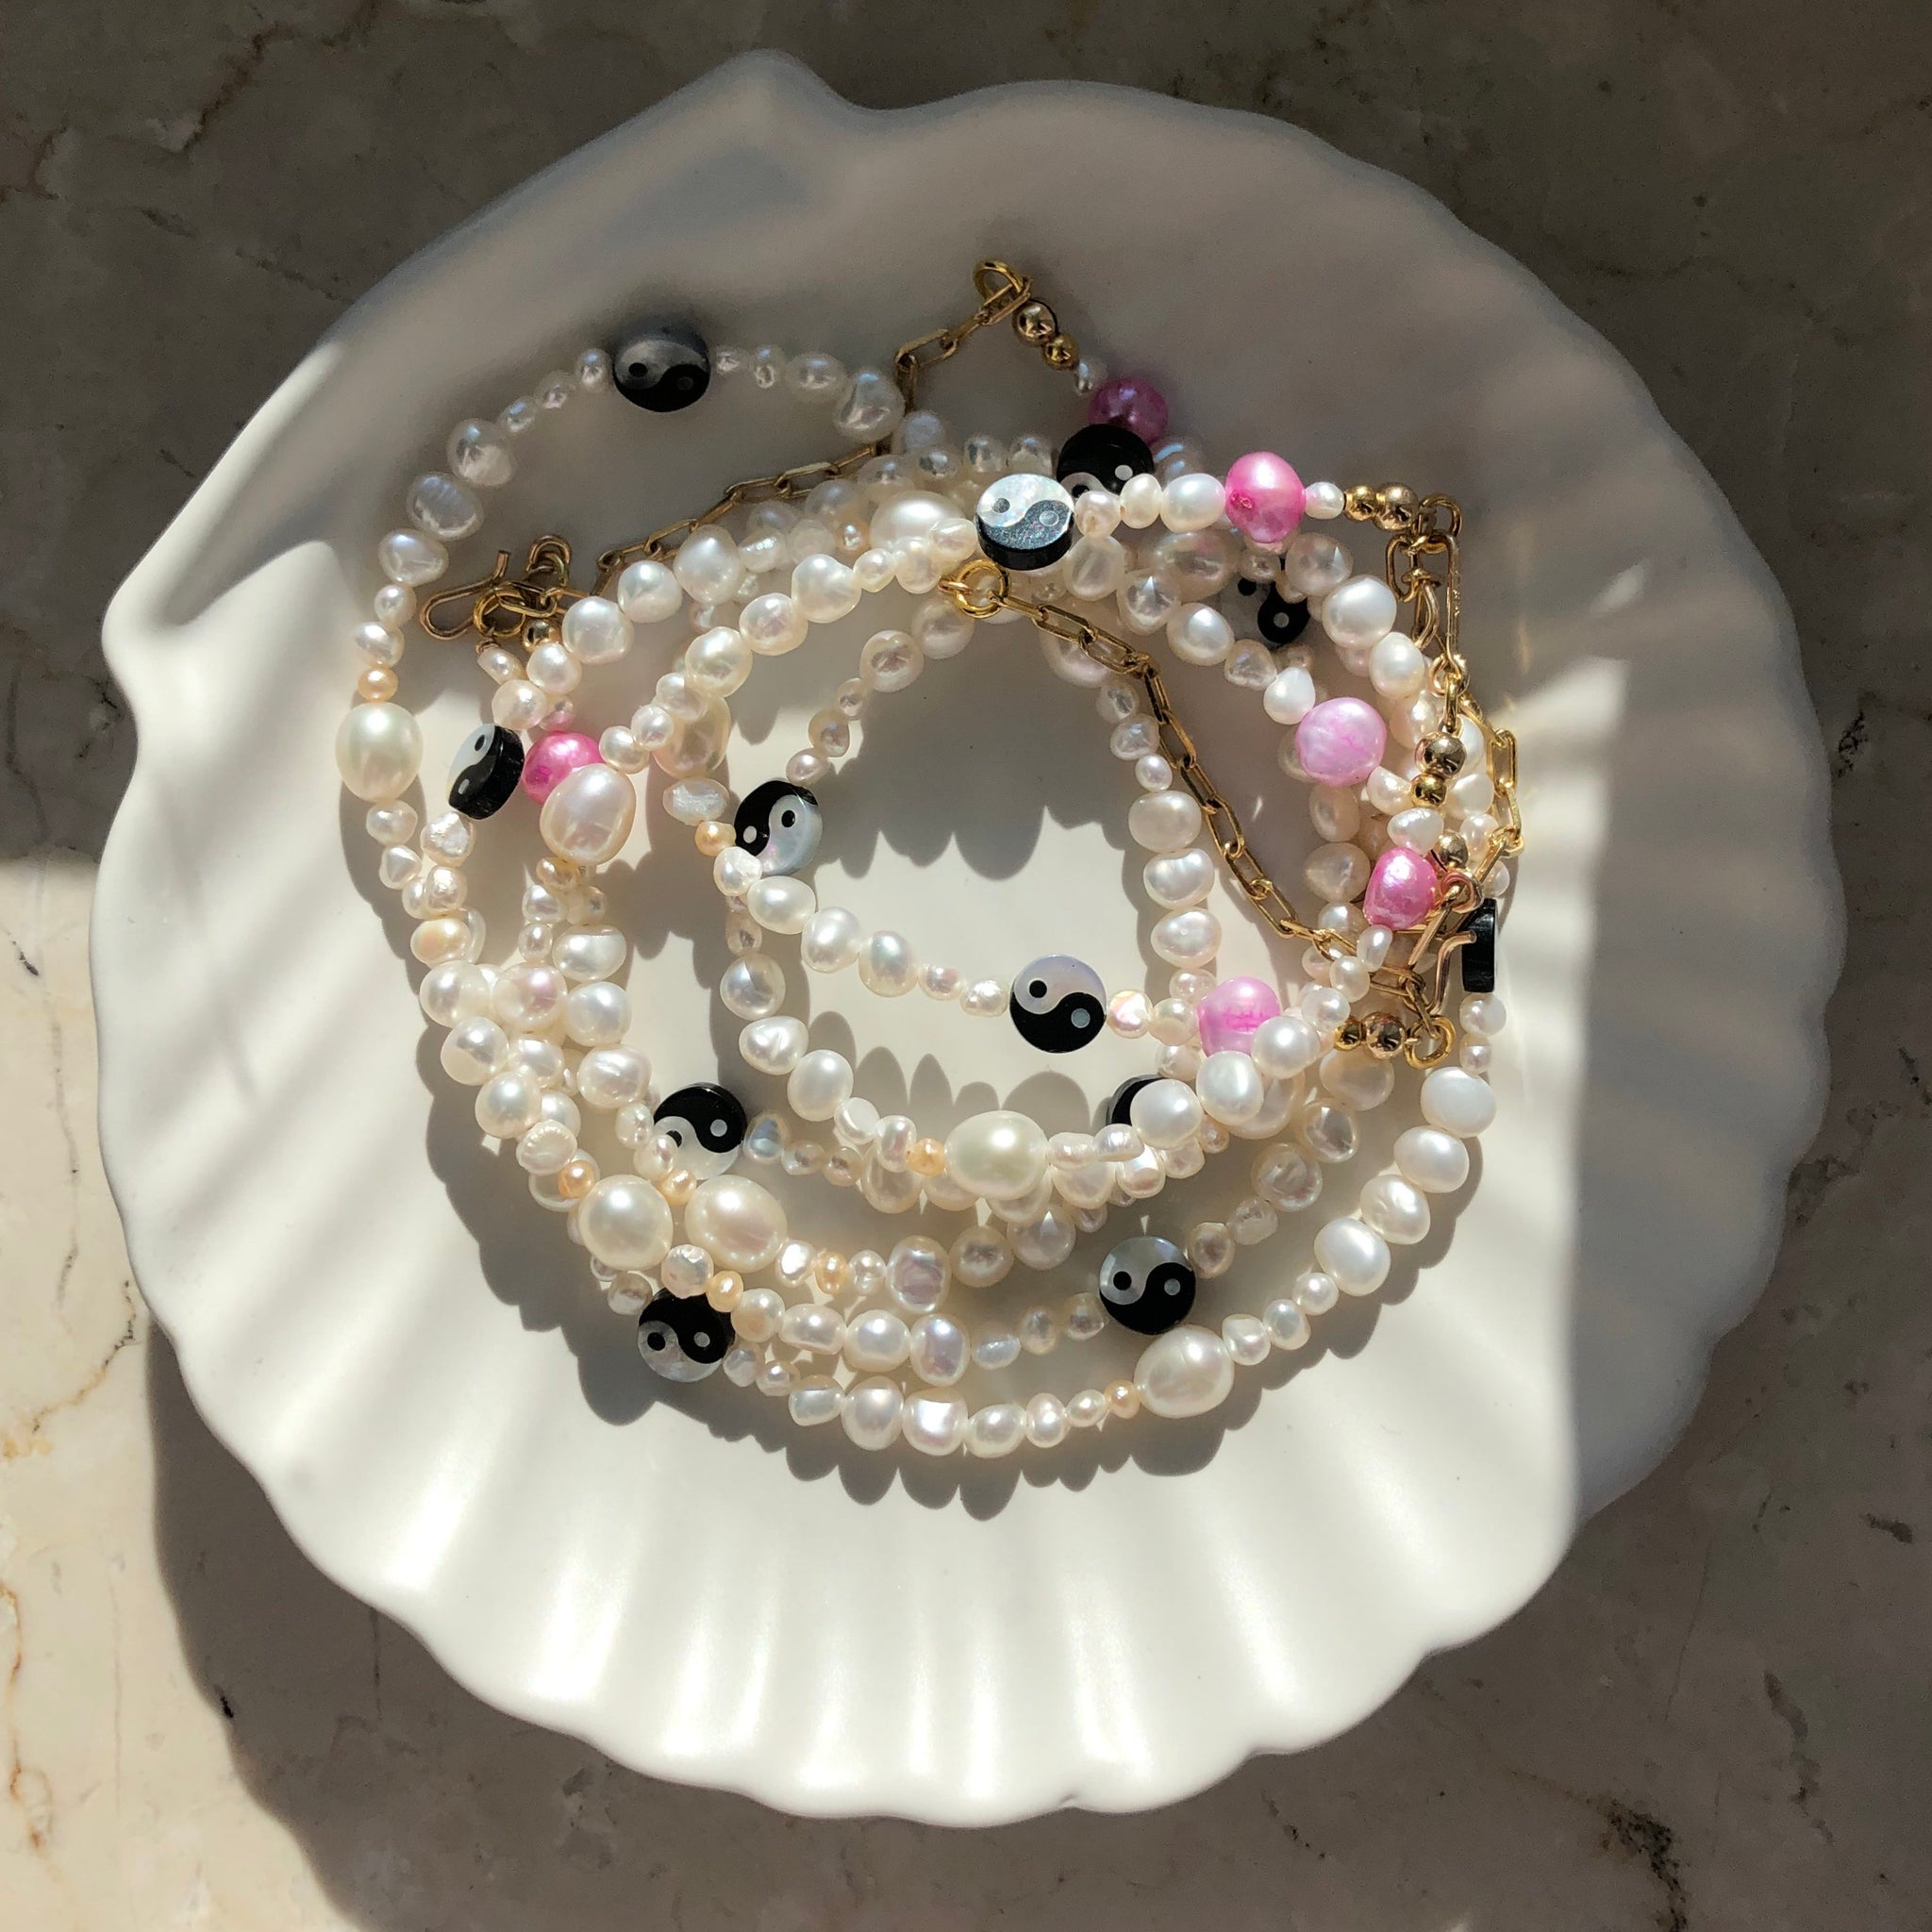 Yin & Yang Pearl Necklace